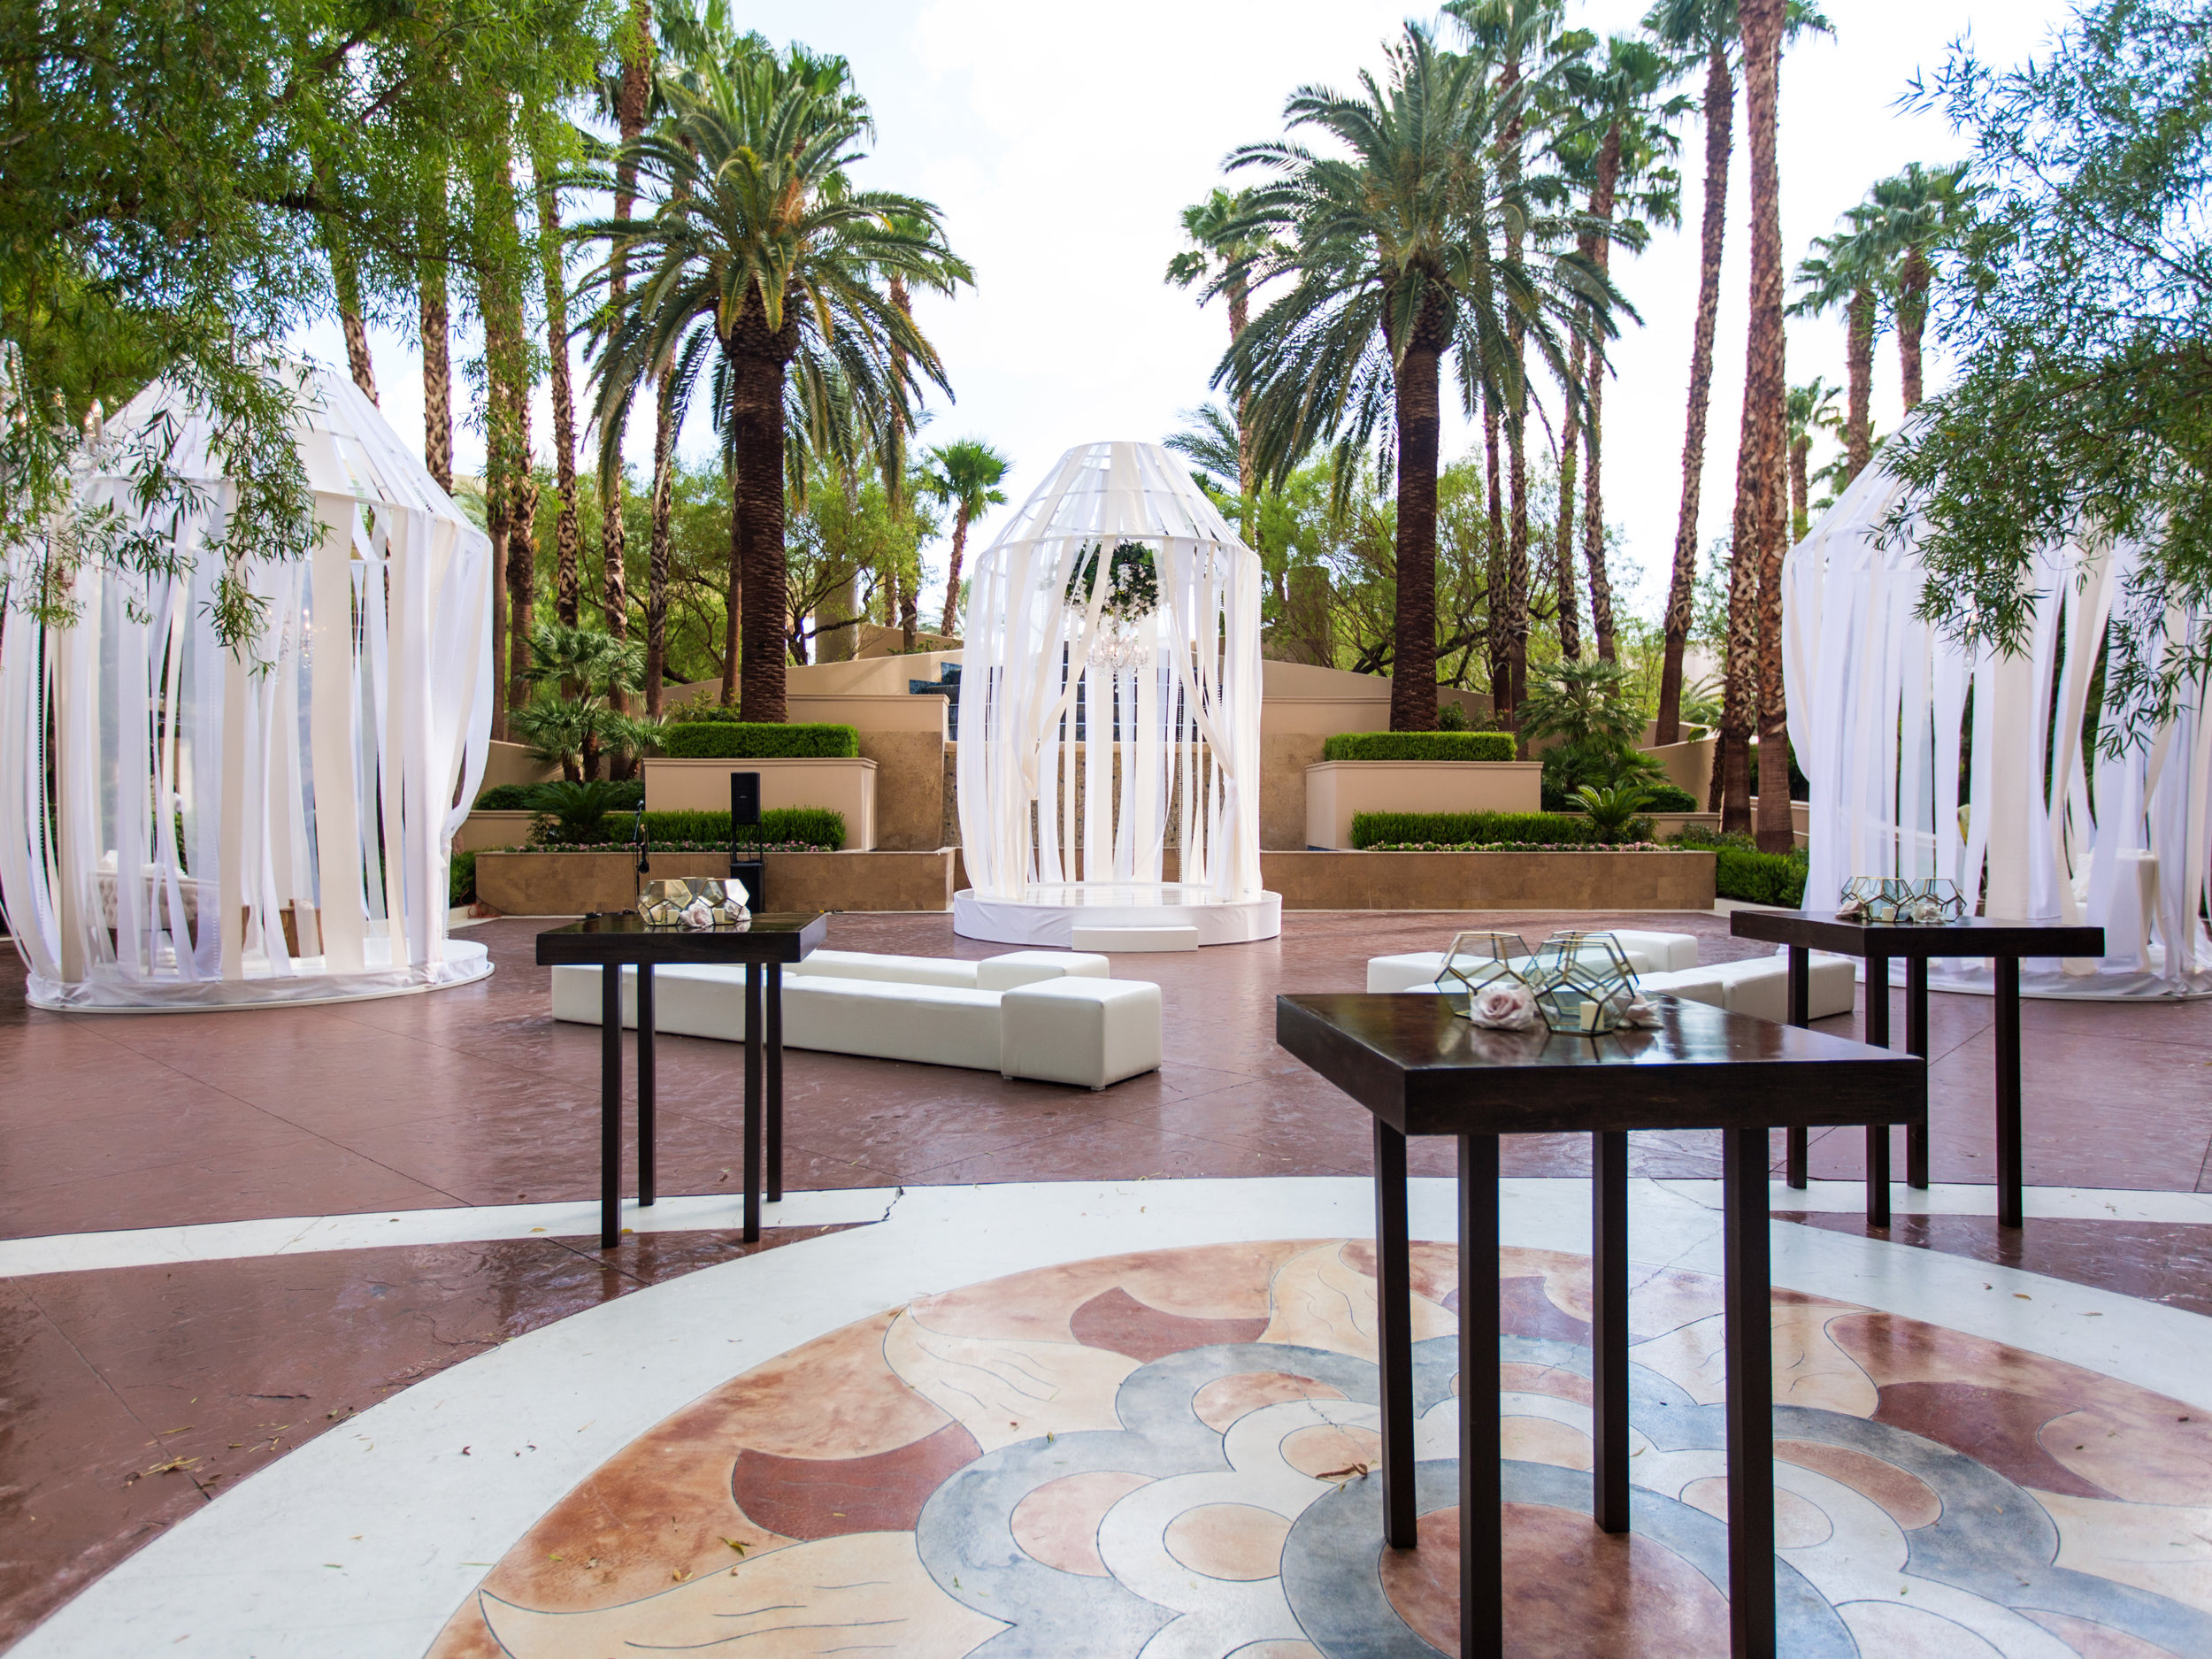 Wedding ceremony at the four seasons. Wedding Planning by  Andrea Eppolito Events  · Photography by  Shandro Photo   · Wedding Venue  Four Seasons Las Vegas  · Floral and Decor by  Destination by Design  · Cake by  Four Seasons Las Vegas  · Chandeliers and Lighting by  LED Unplugged  · Dress by  Berta